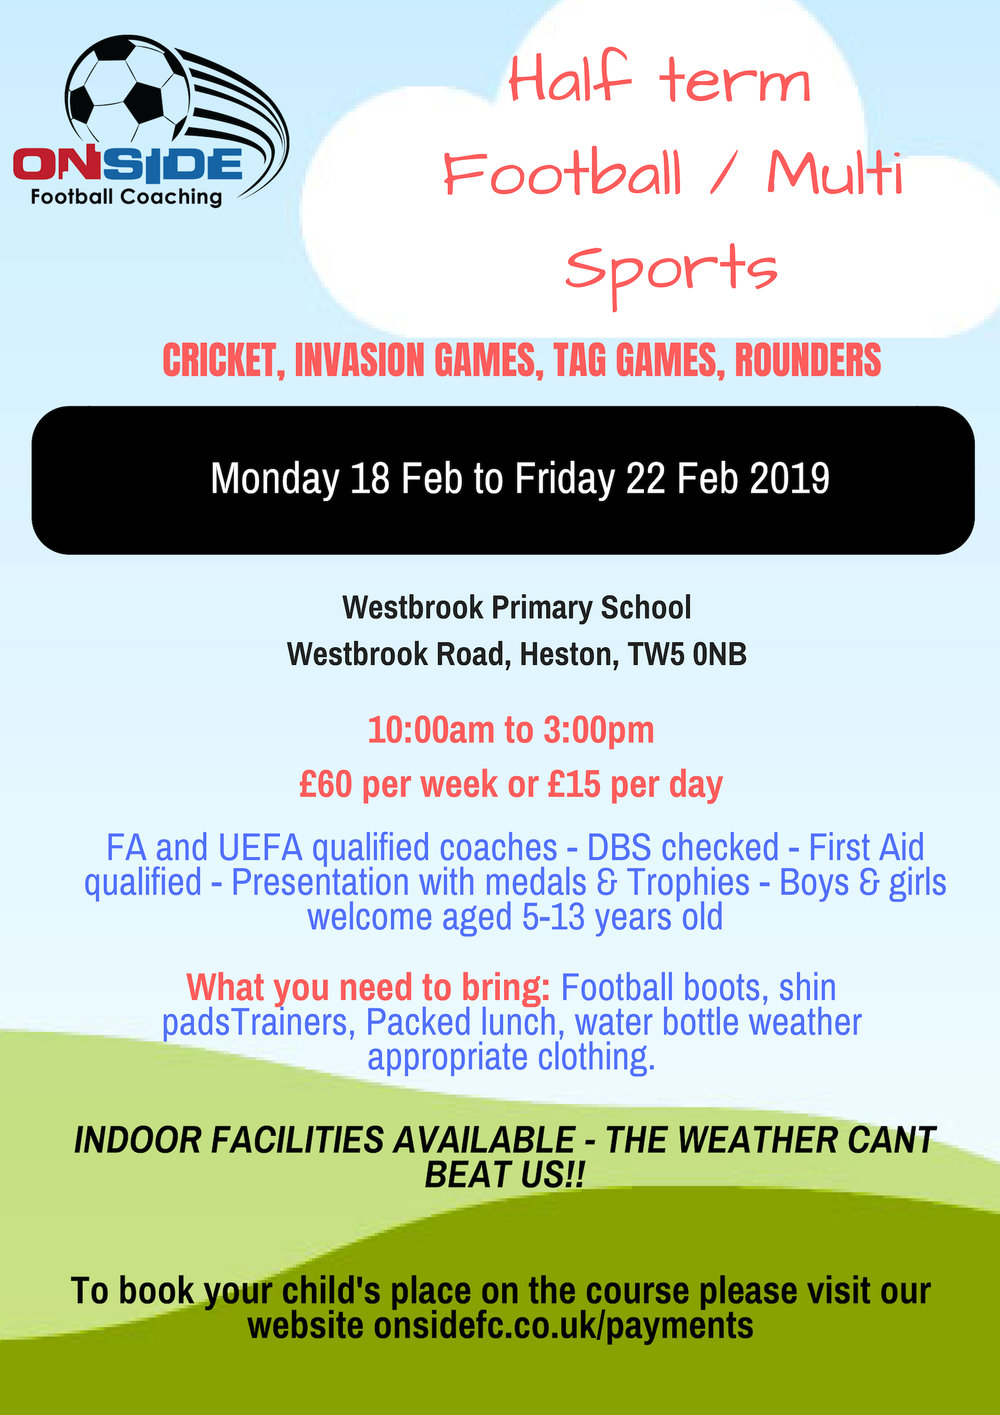 Westbrook Feb 2019 half term flyer.jpg